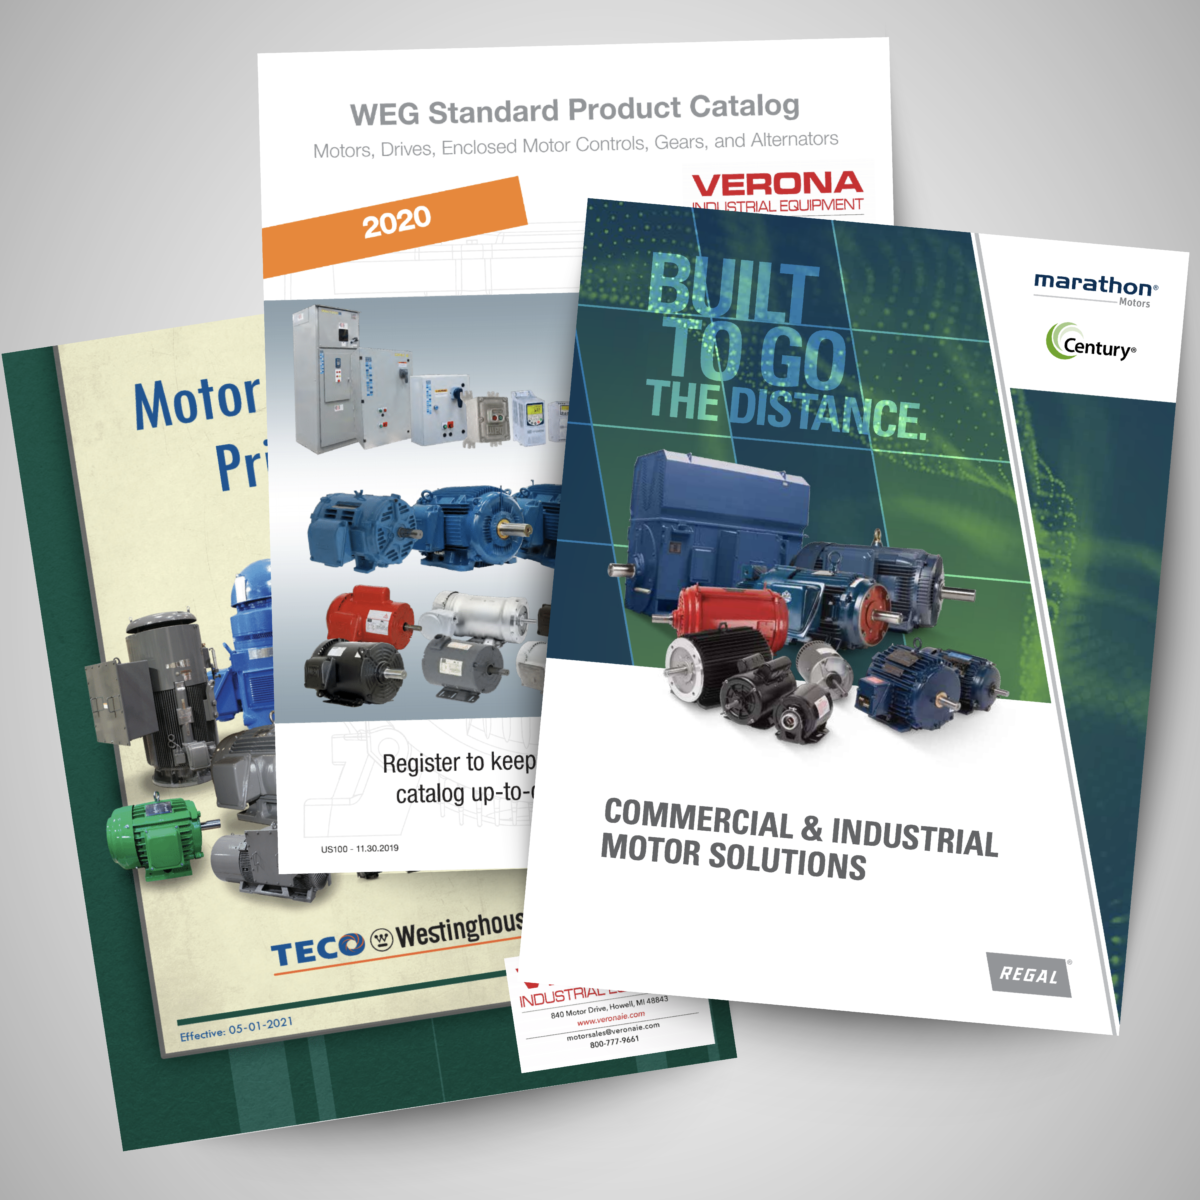 product catalogs graphic over background